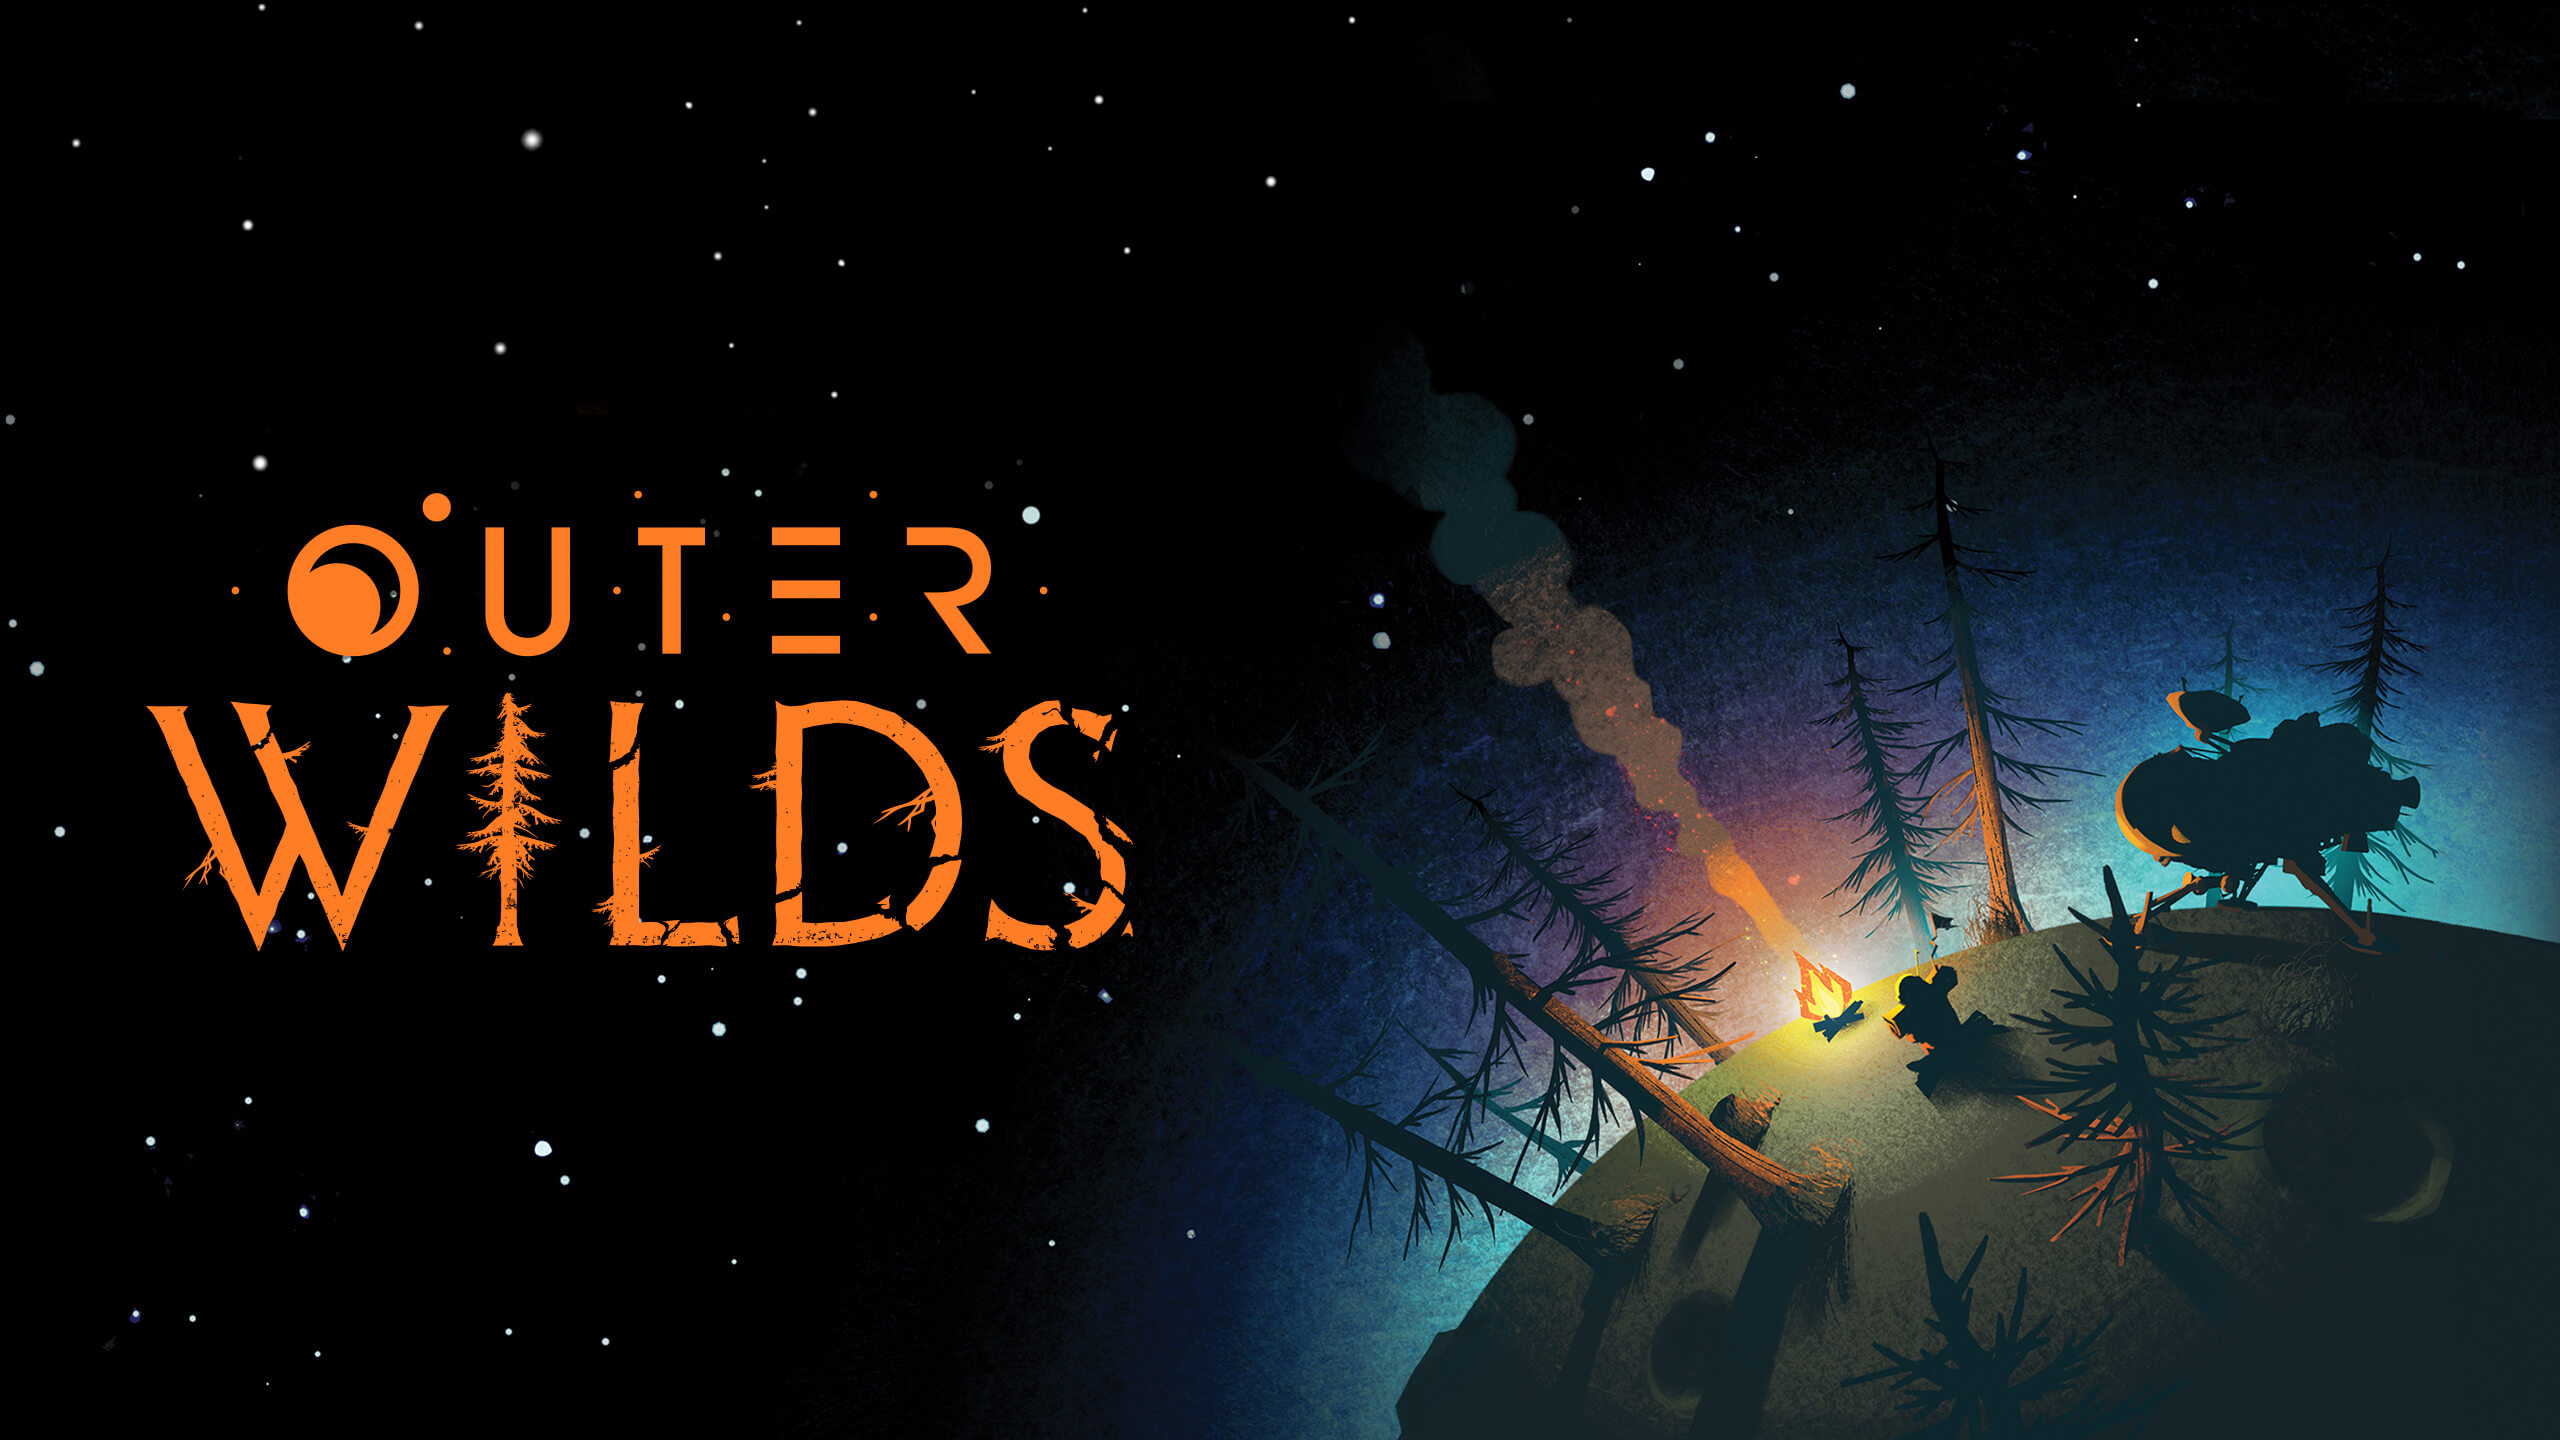 Explore the open world mystery of Outer Wilds, where a hand-crafted solar system is stuck in an endless time loop. Now available for pre-purchase!